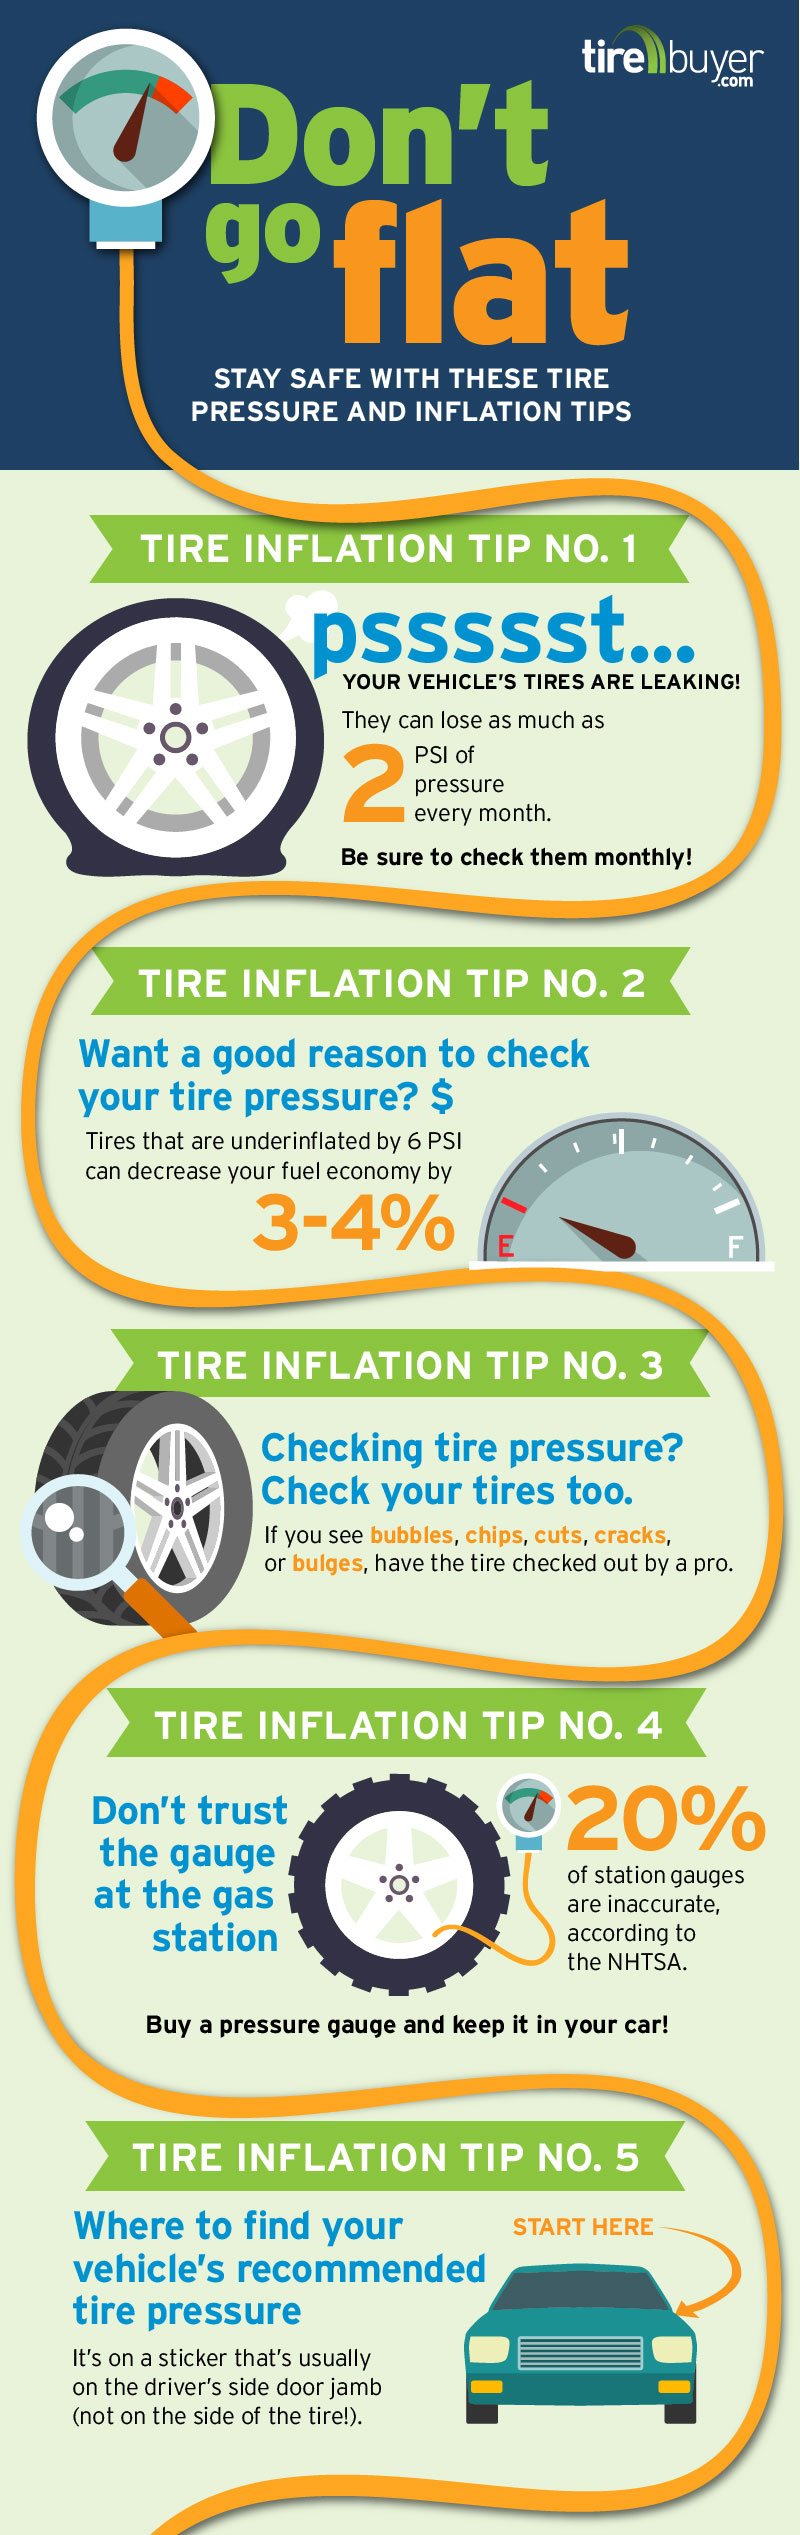 stay safe with these tire pressure and inflation tips